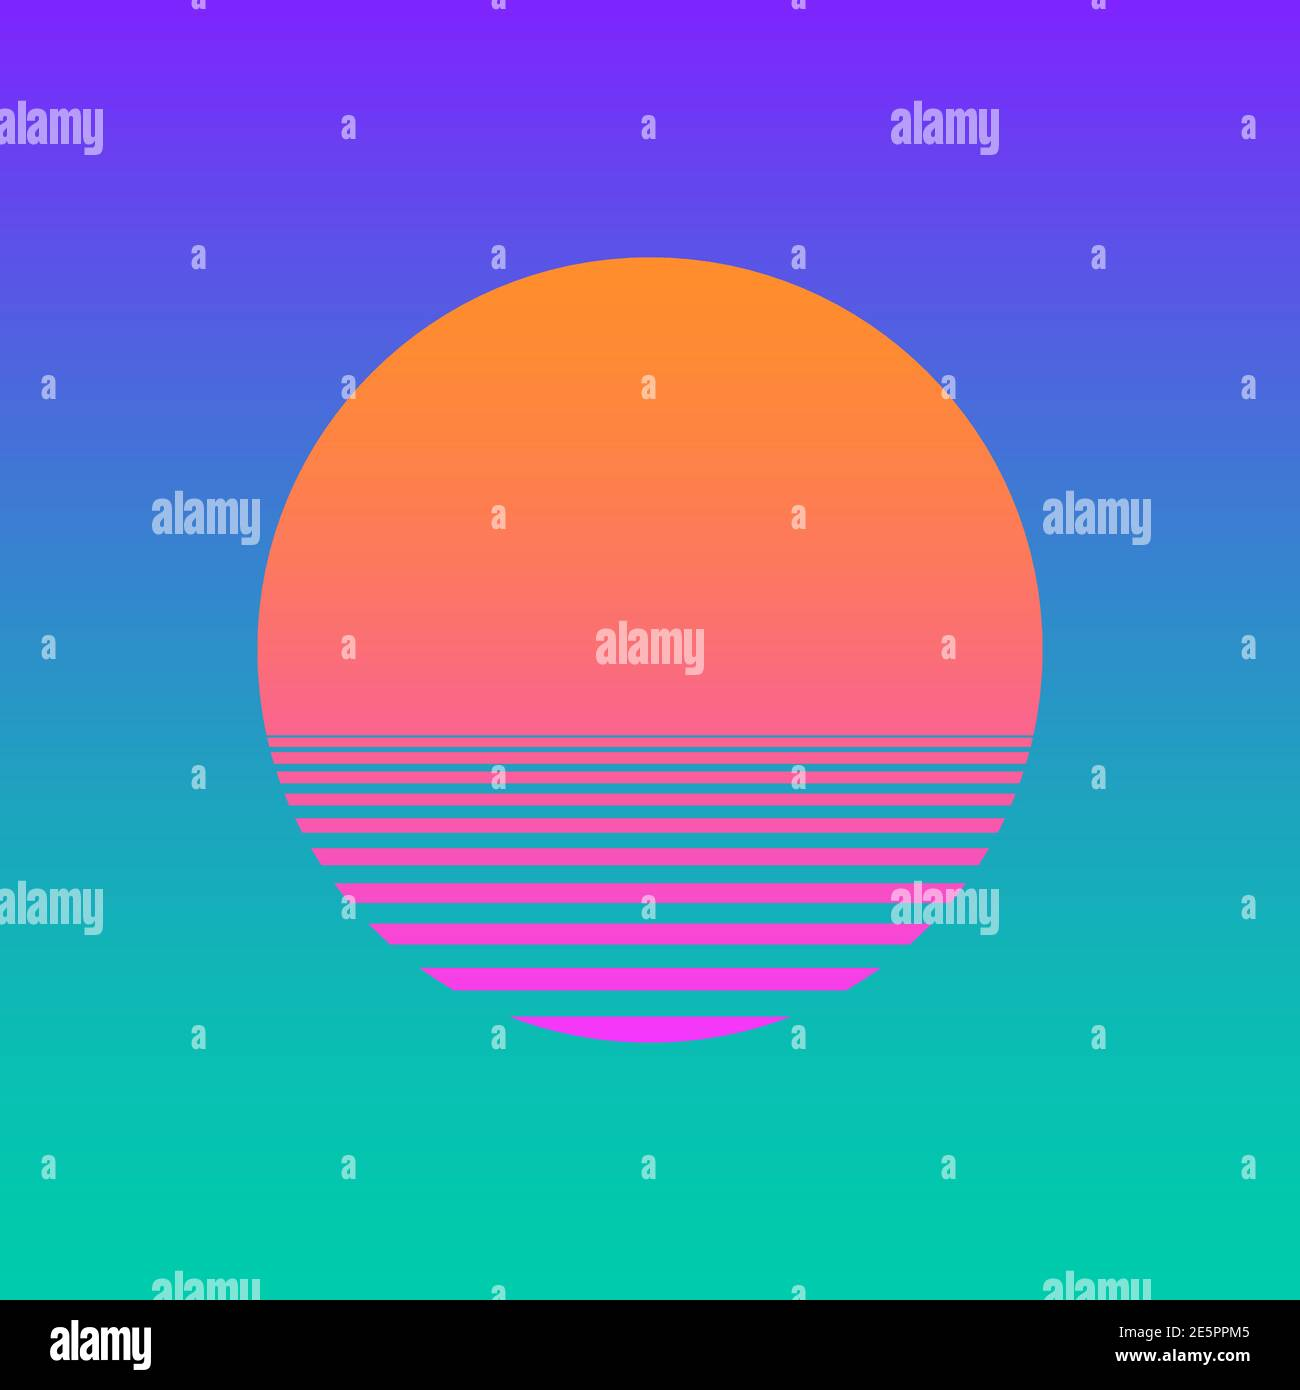 Isolated sunset gradient on turquoise background. Vector illustration of sun in retro 80s and 90s style. Stock Vector